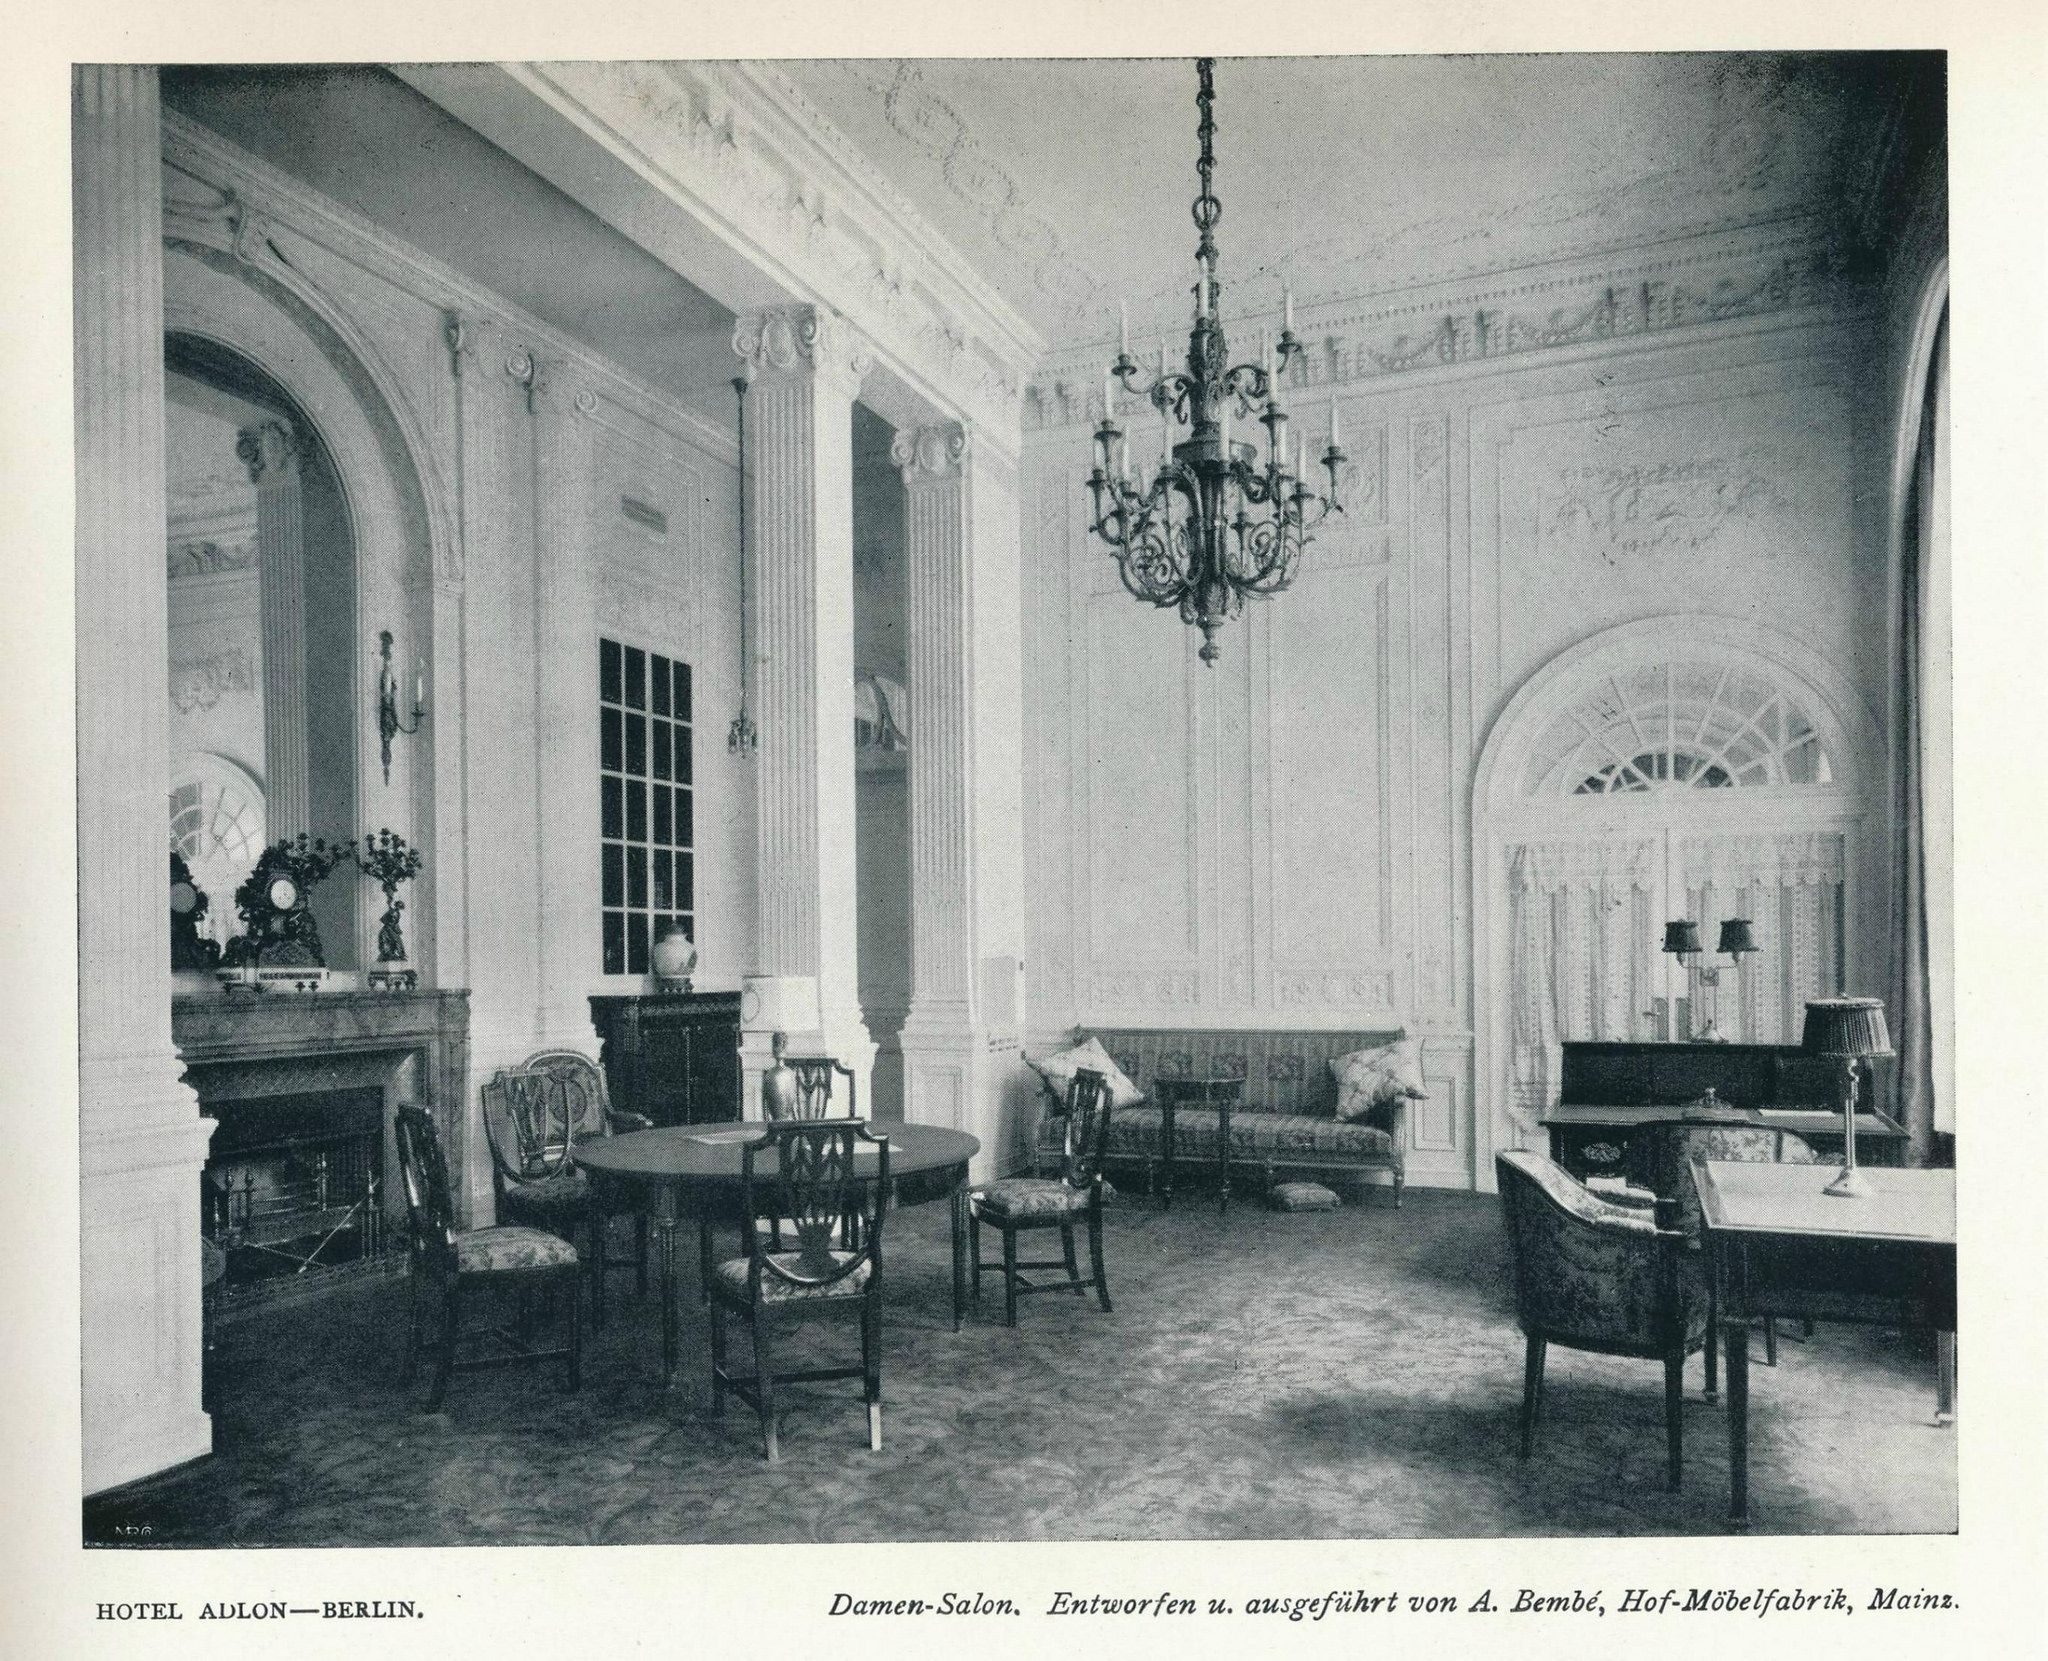 https://flic.kr/p/xXycGK | Innendecoration 1908 Berlin Hotel Adlon  j4